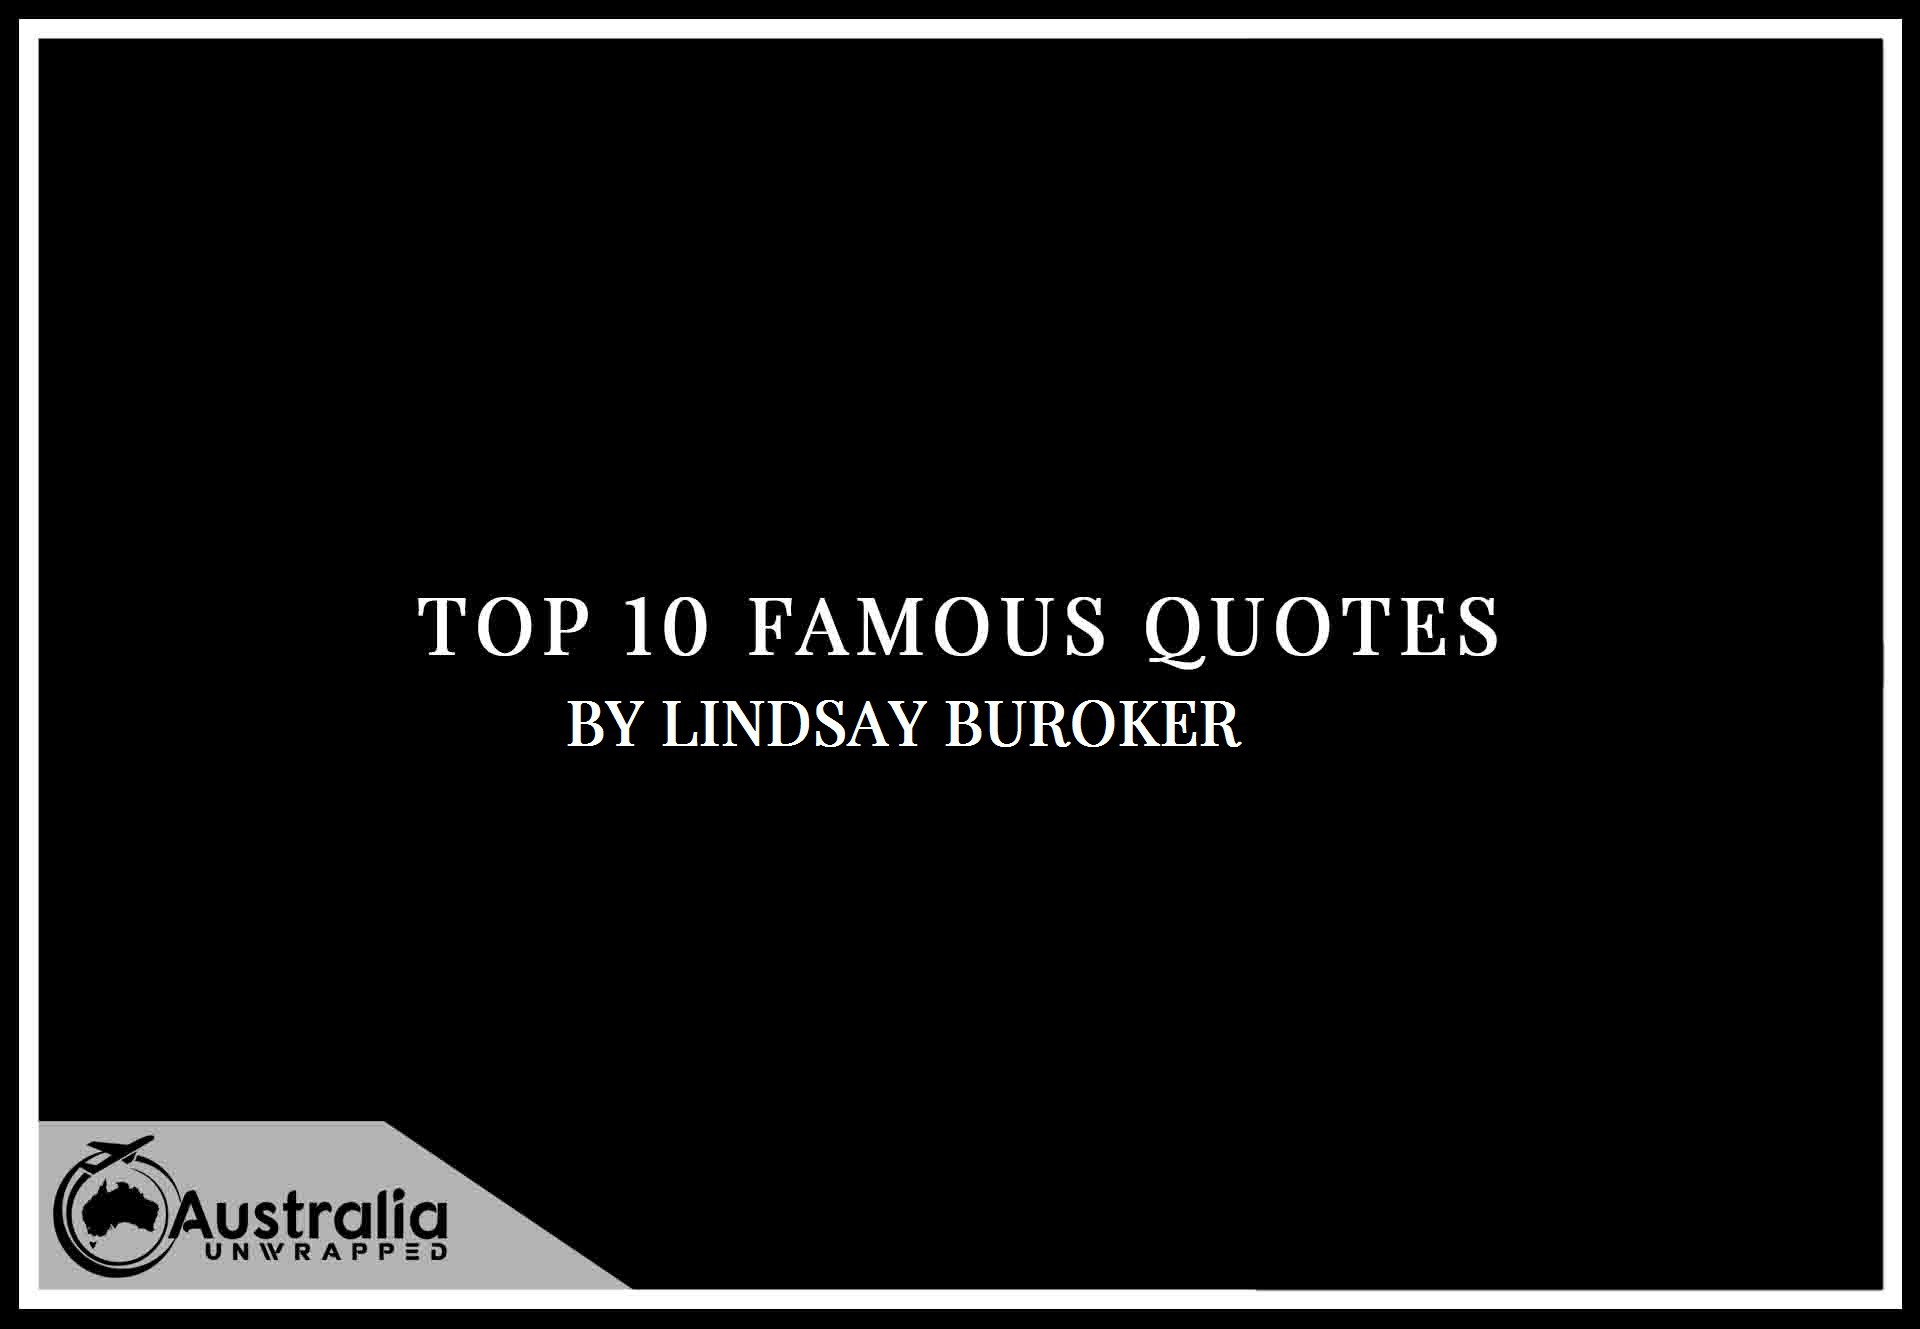 Lindsay Buroker's Top 10 Popular and Famous Quotes